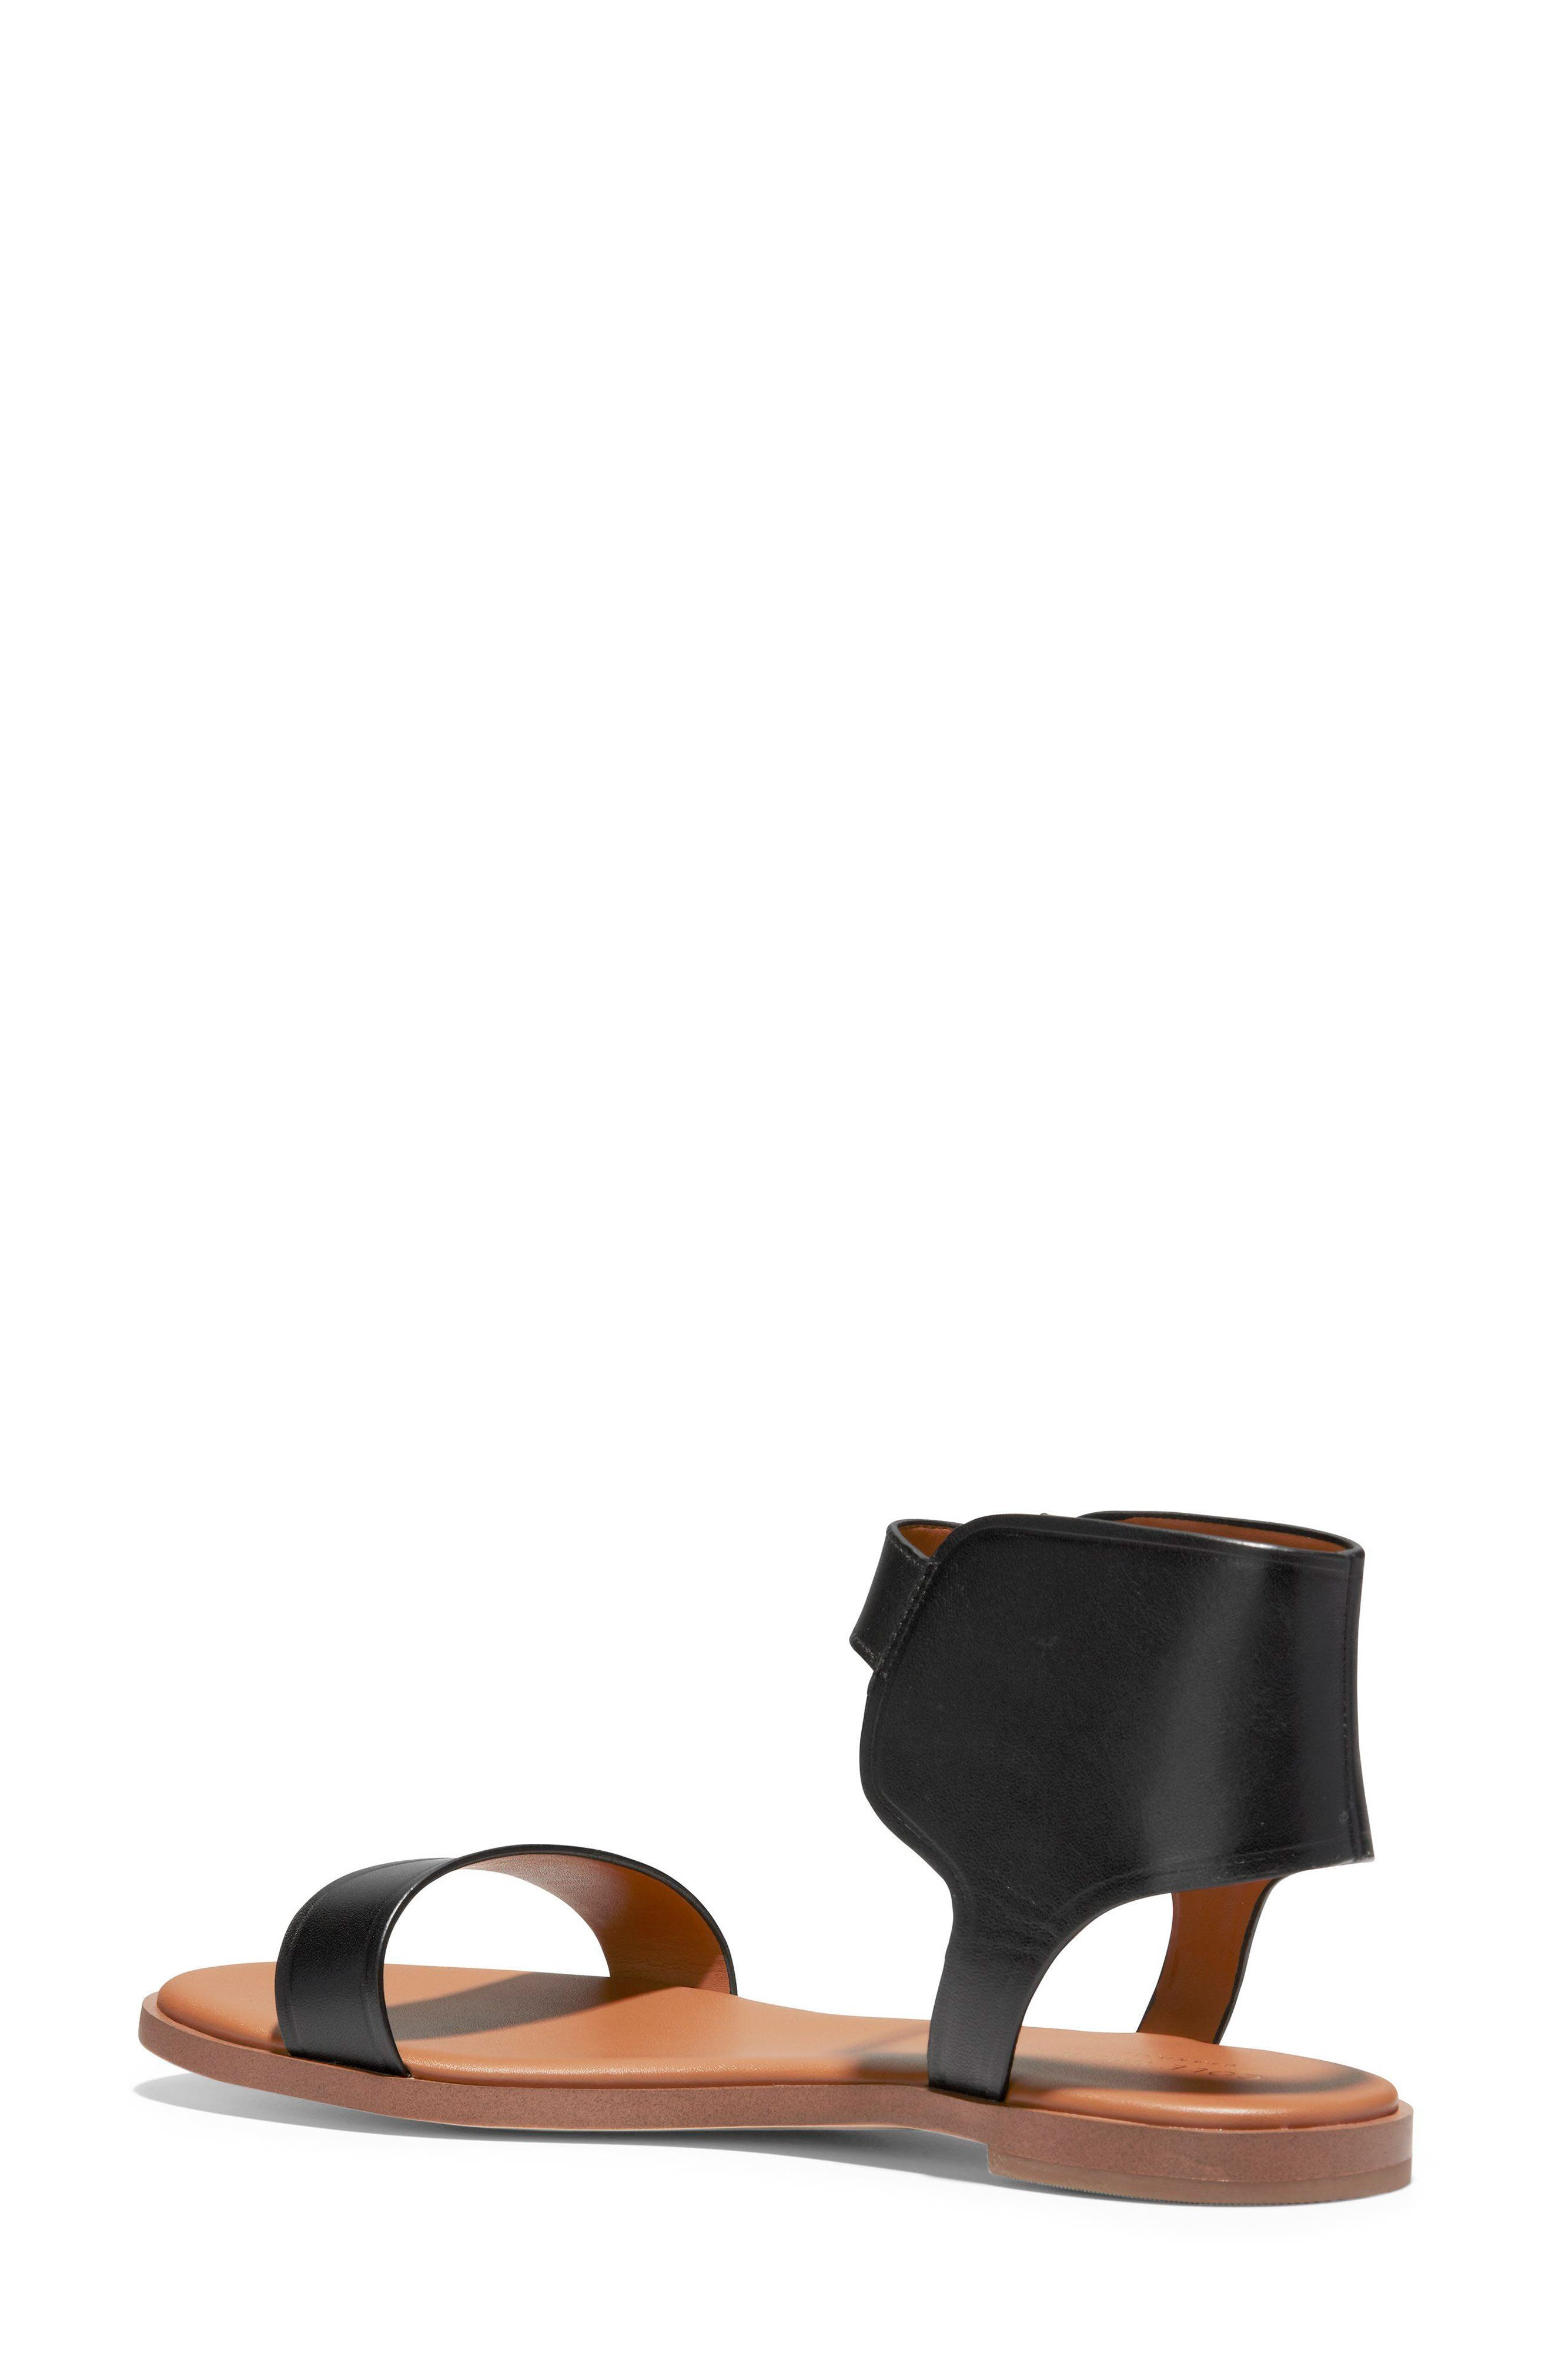 COLE HAAN,                             Anica Cuffed Sandal,                             Alternate thumbnail 2, color,                             001